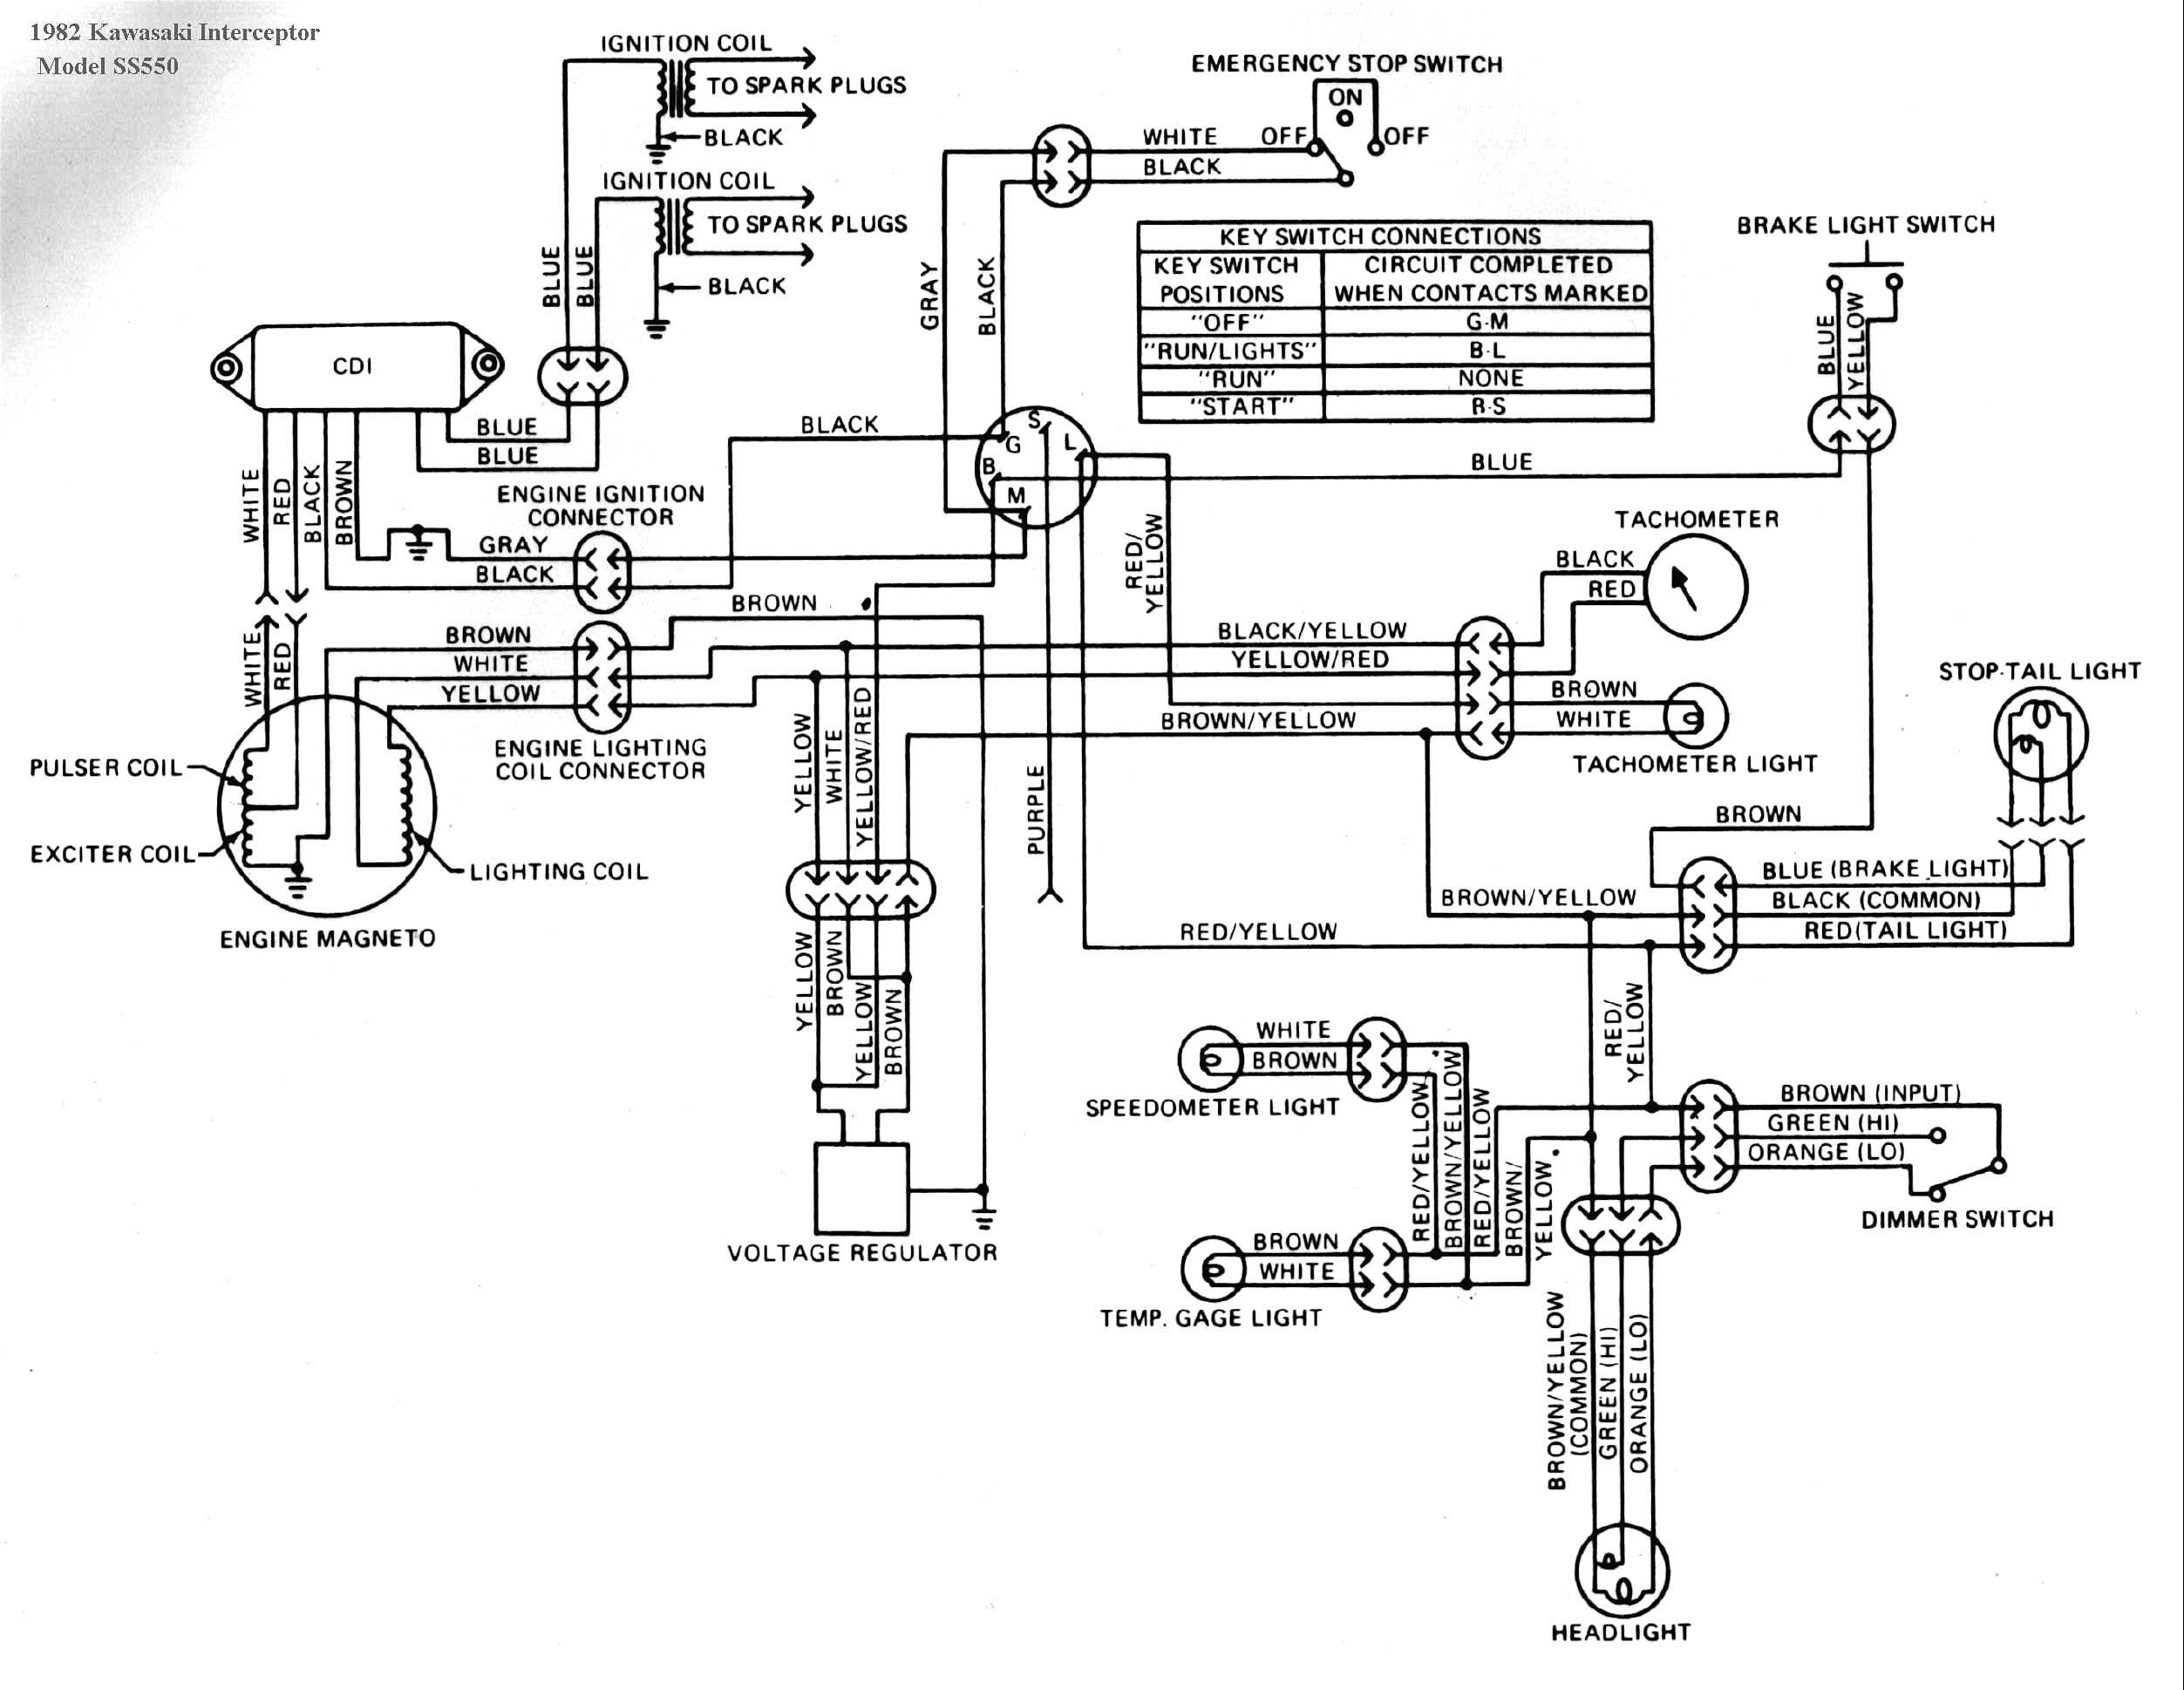 Yamaha Ignition Diagram